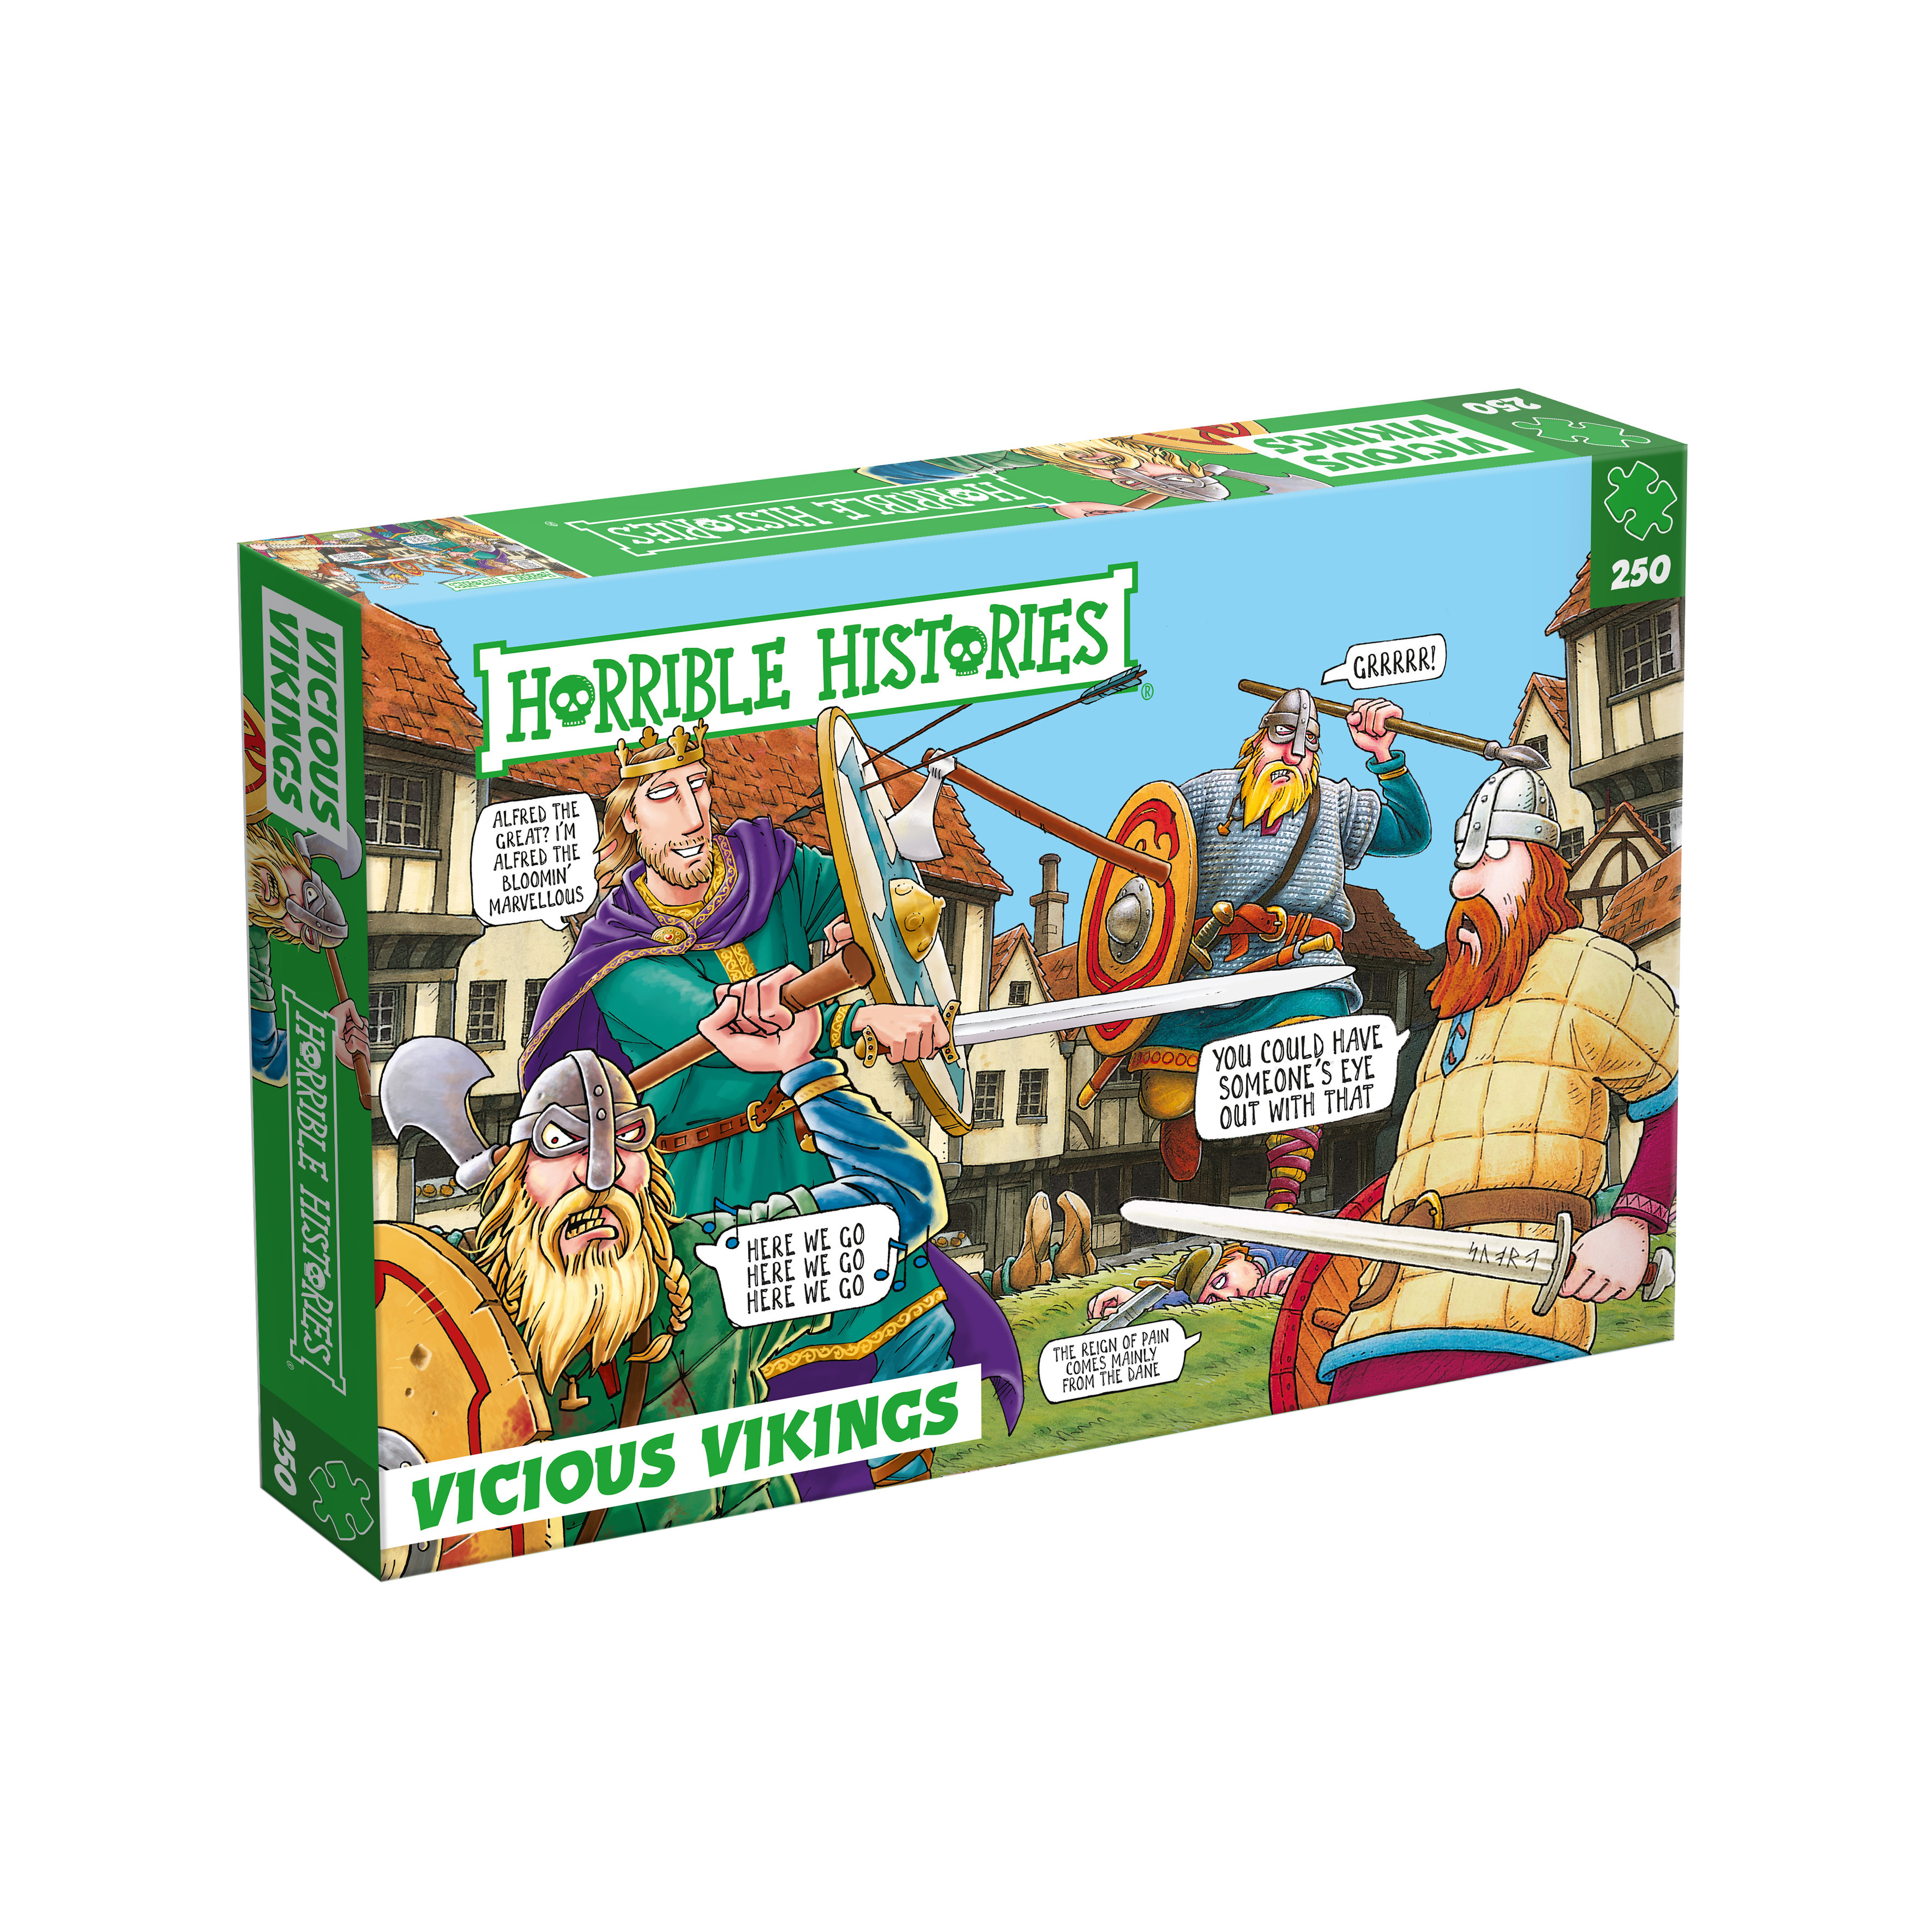 Horrible histories jigsaw puzzle (vicious Vikings)